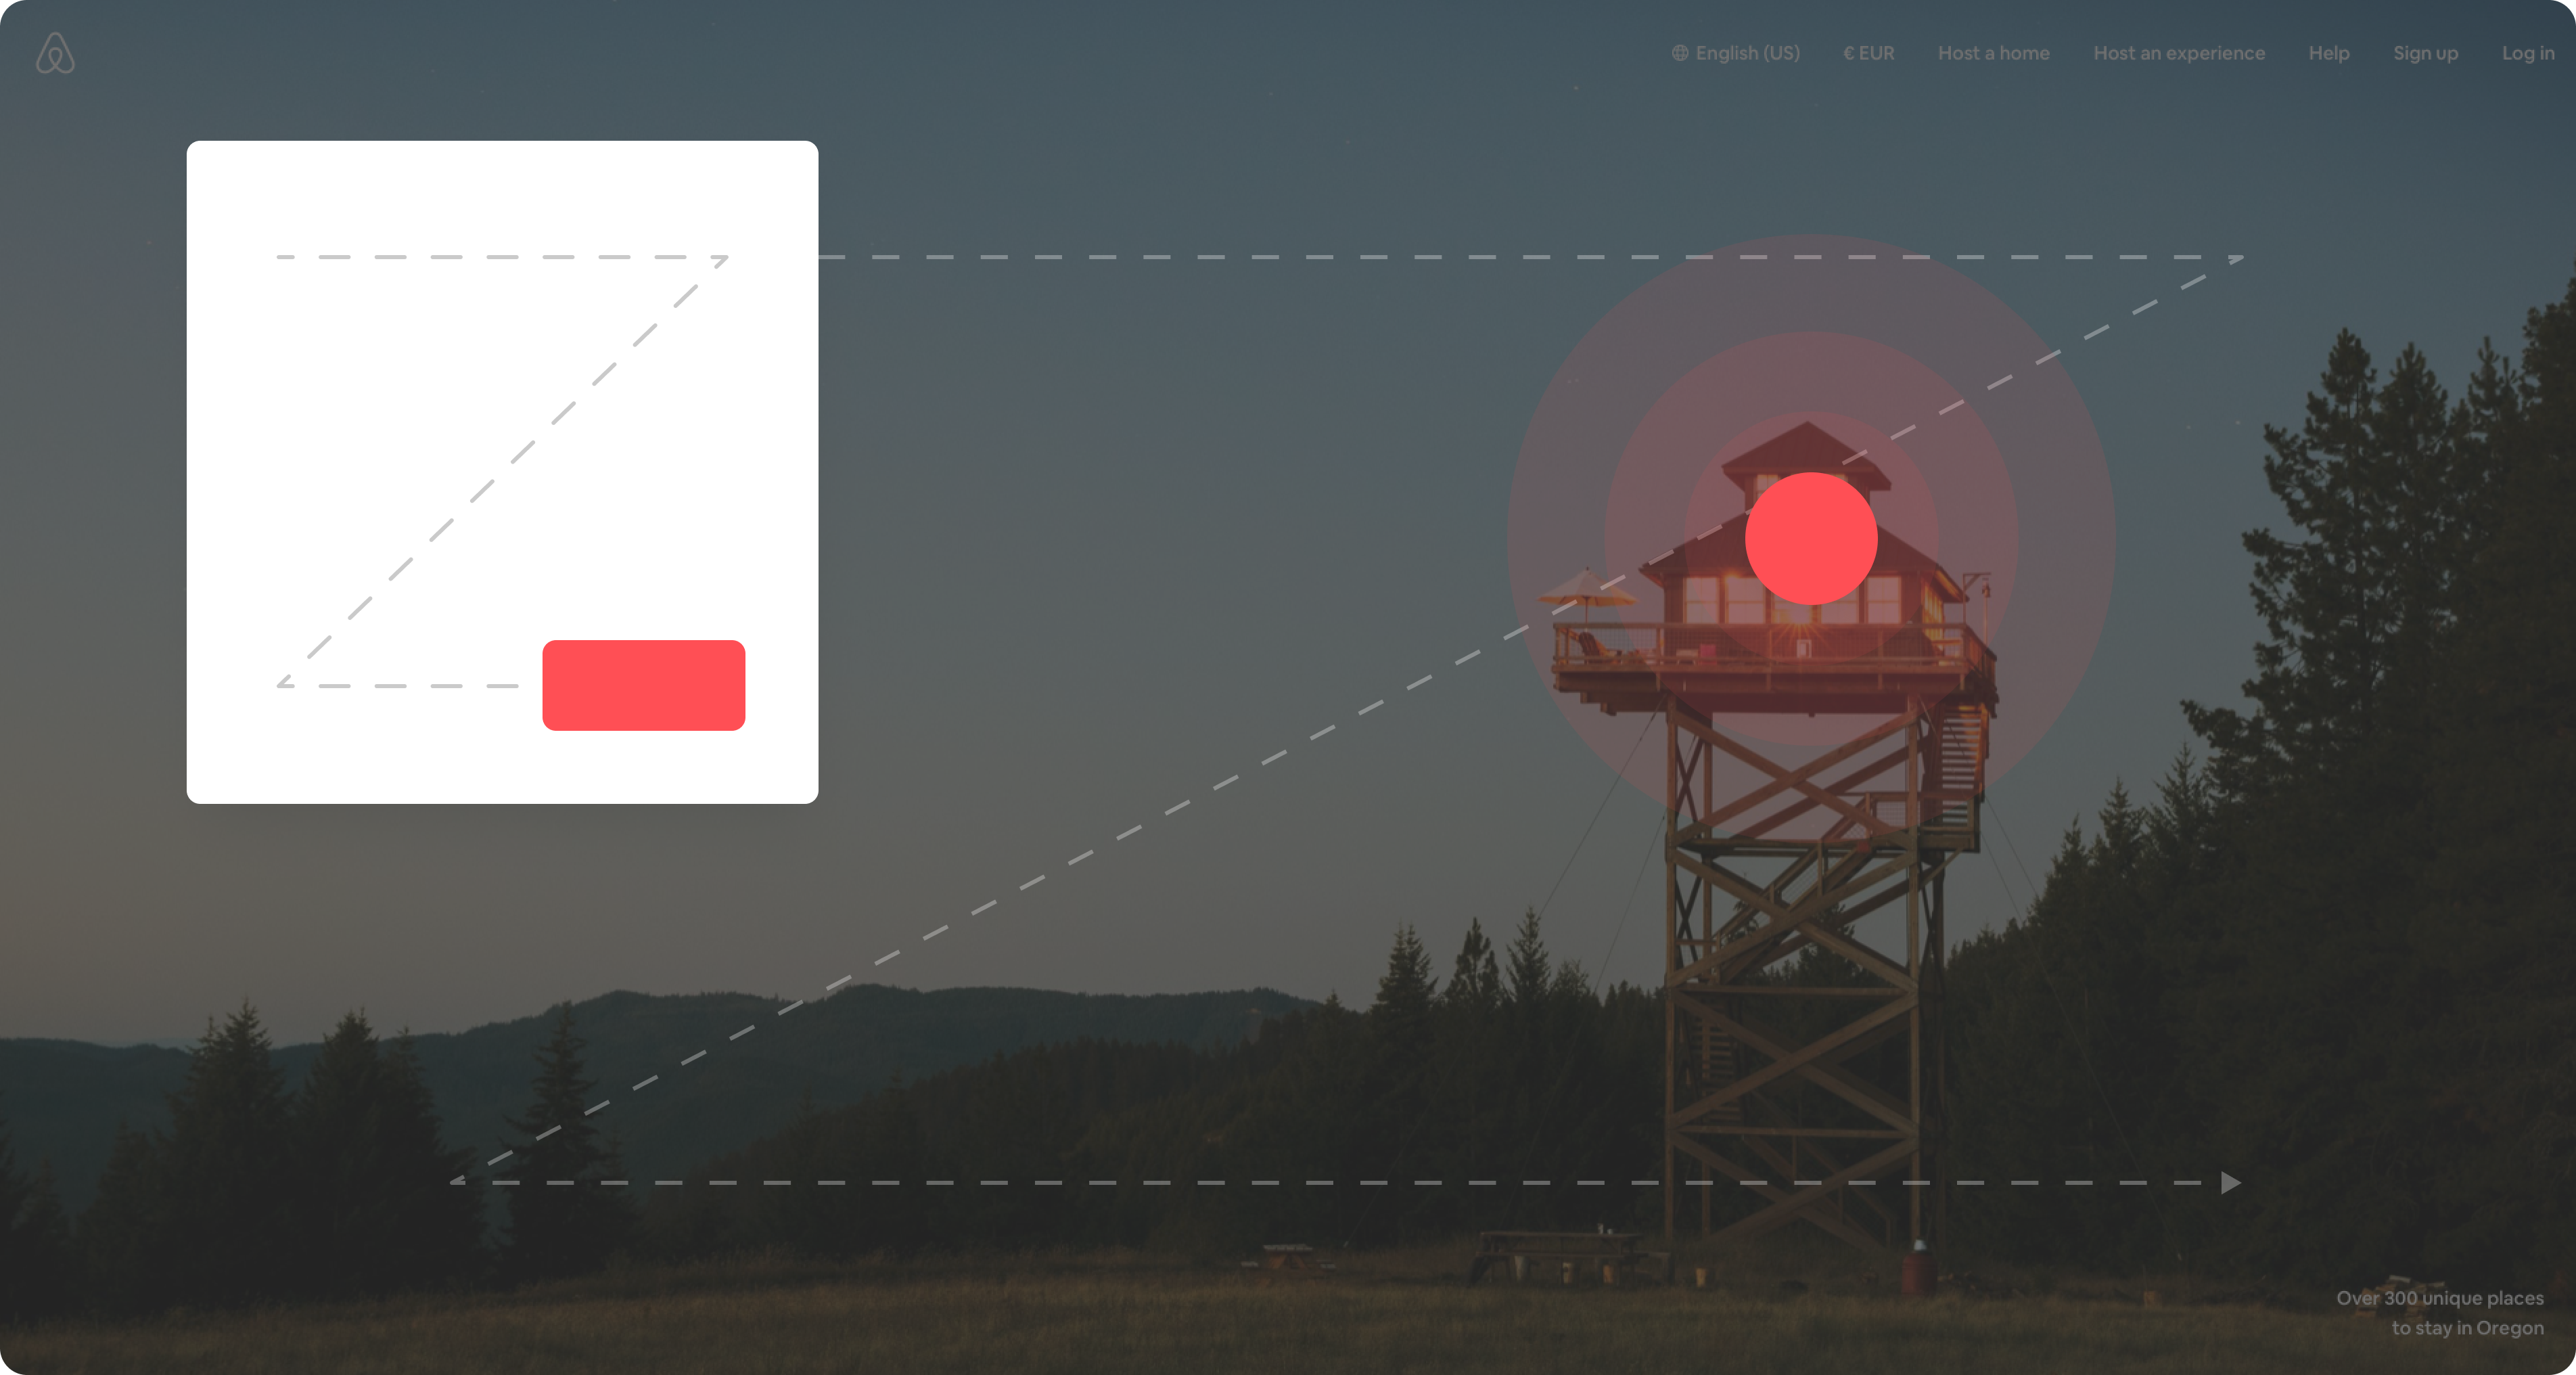 How Airbnb Drives User Action With Its Landing Page Design - UX Analysis